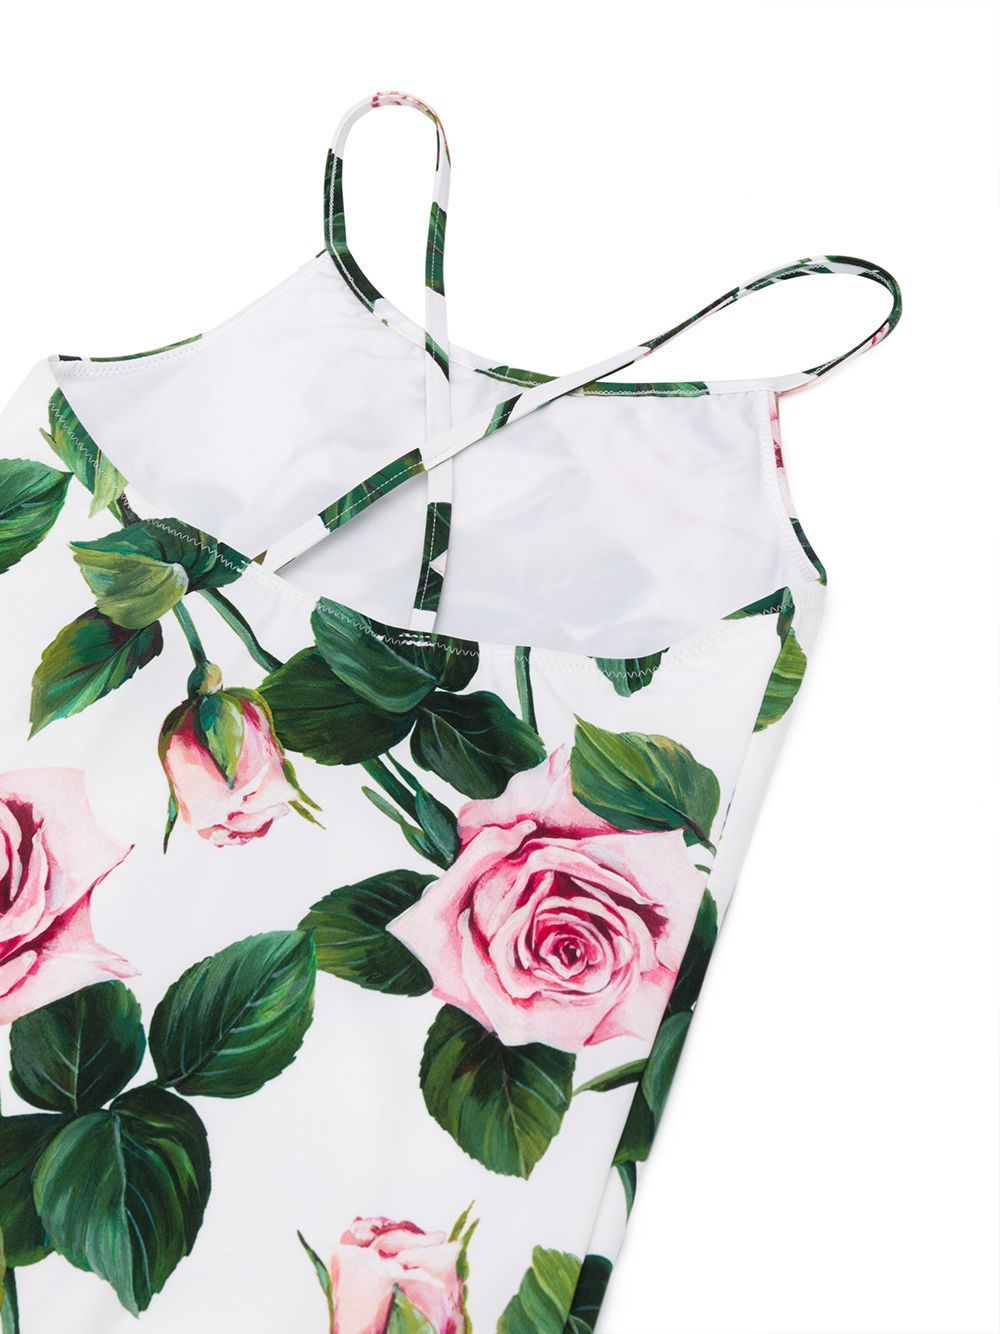 DOLCE & GABBANA KIDS Rose Print Swimsuit White - Maison De Fashion